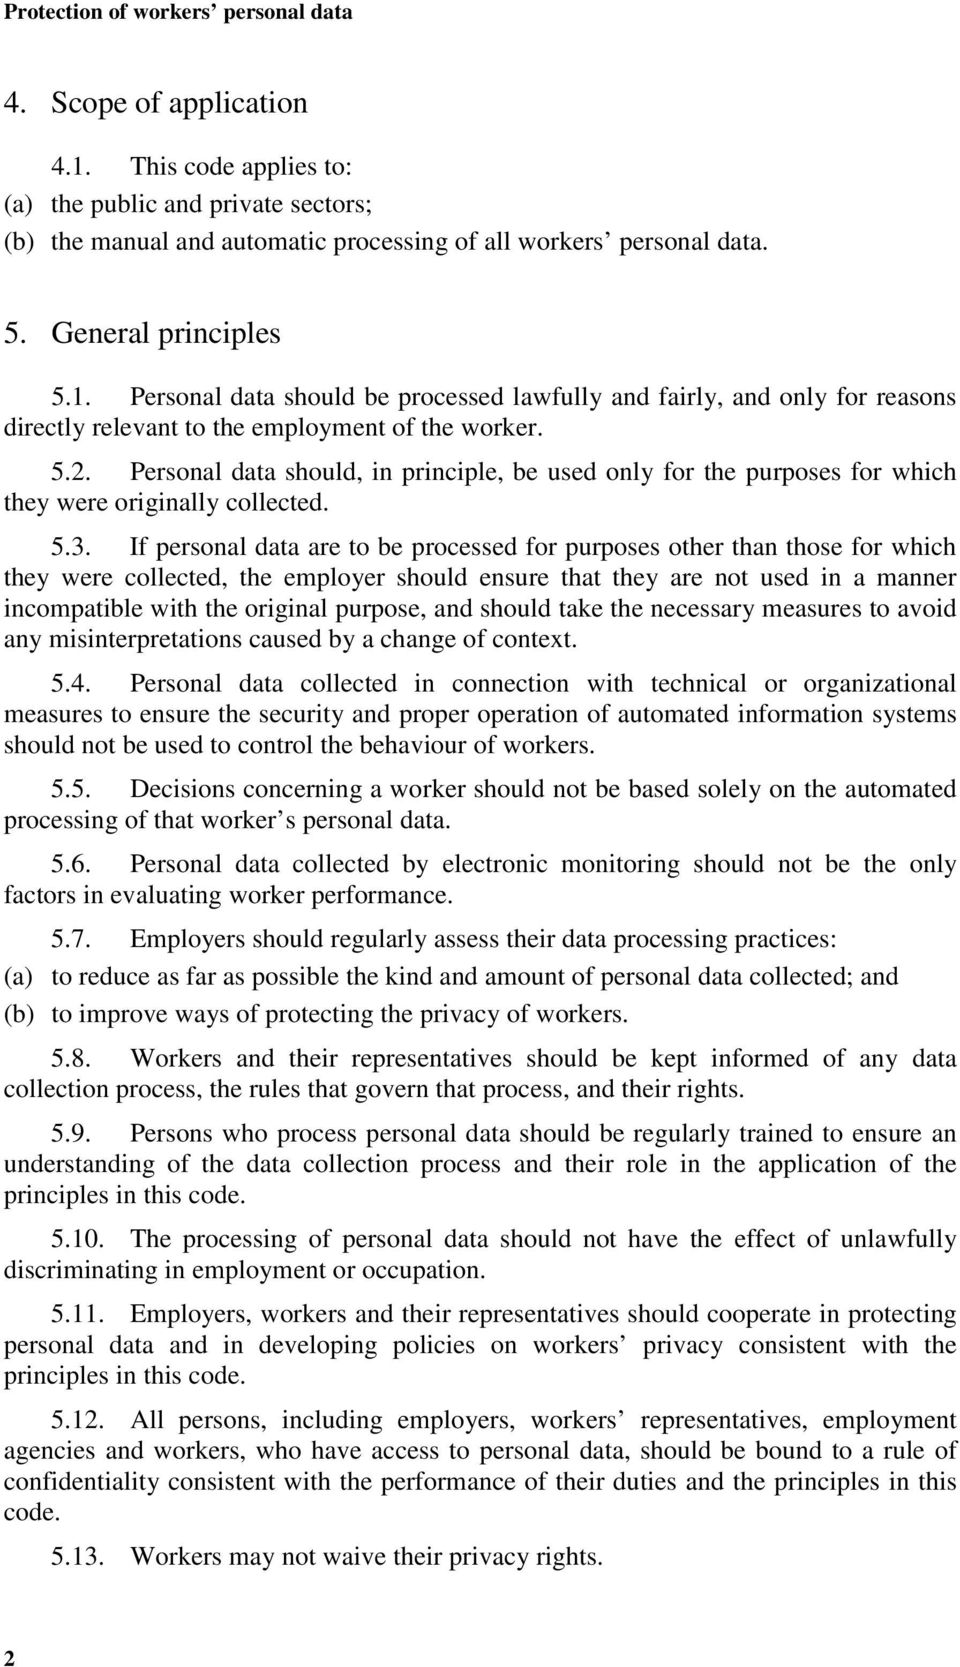 Personal data should, in principle, be used only for the purposes for which they were originally collected. 5.3.